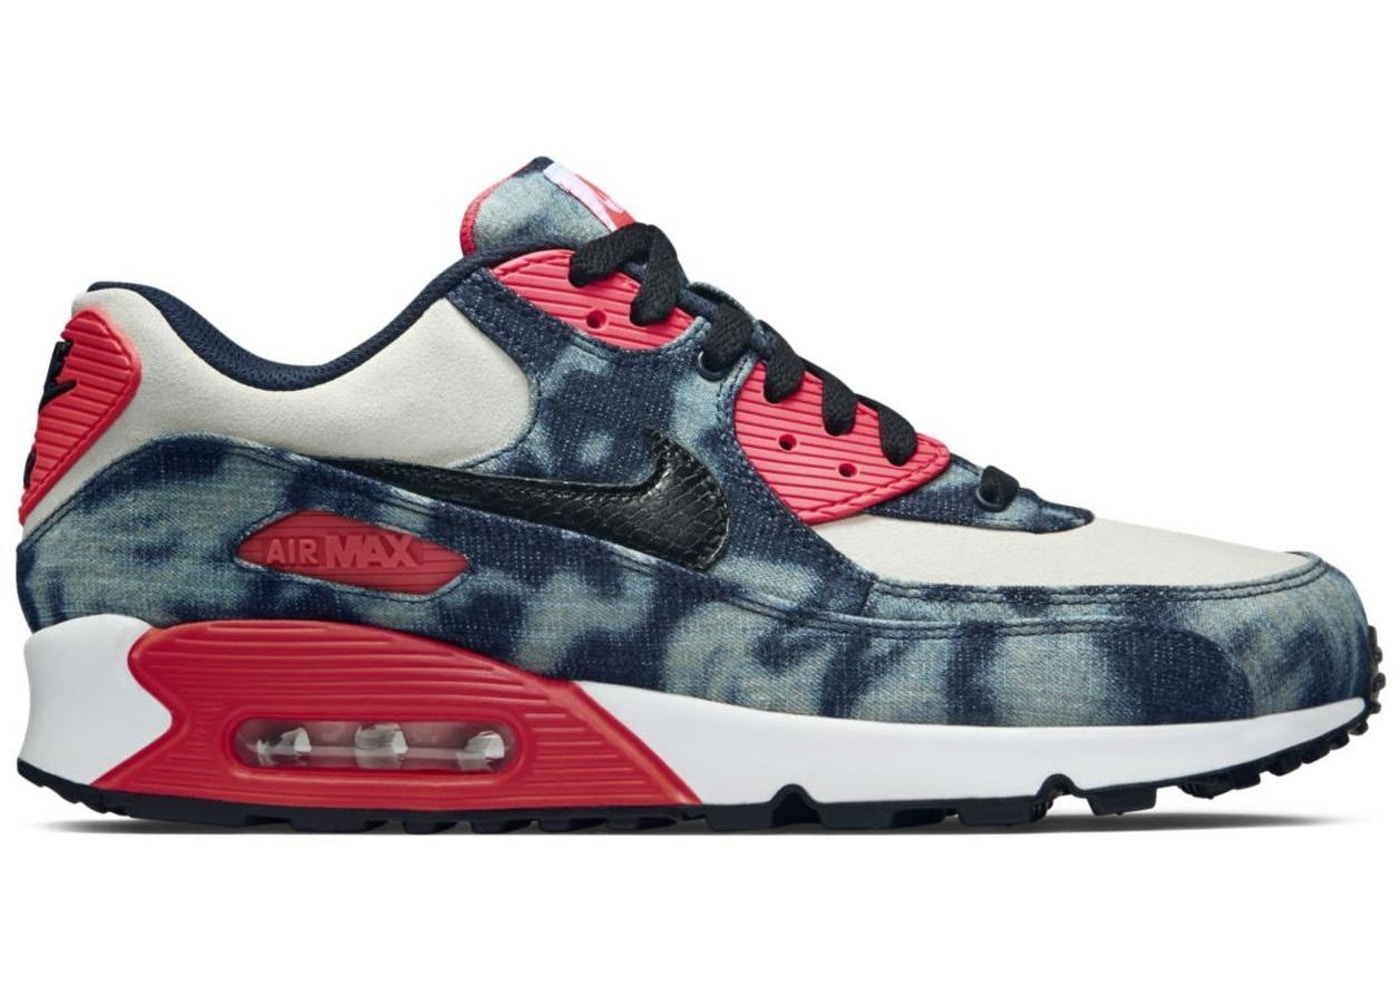 new style 5c7a5 e4b24 Nike Air Max 90 Shoes - Volatility